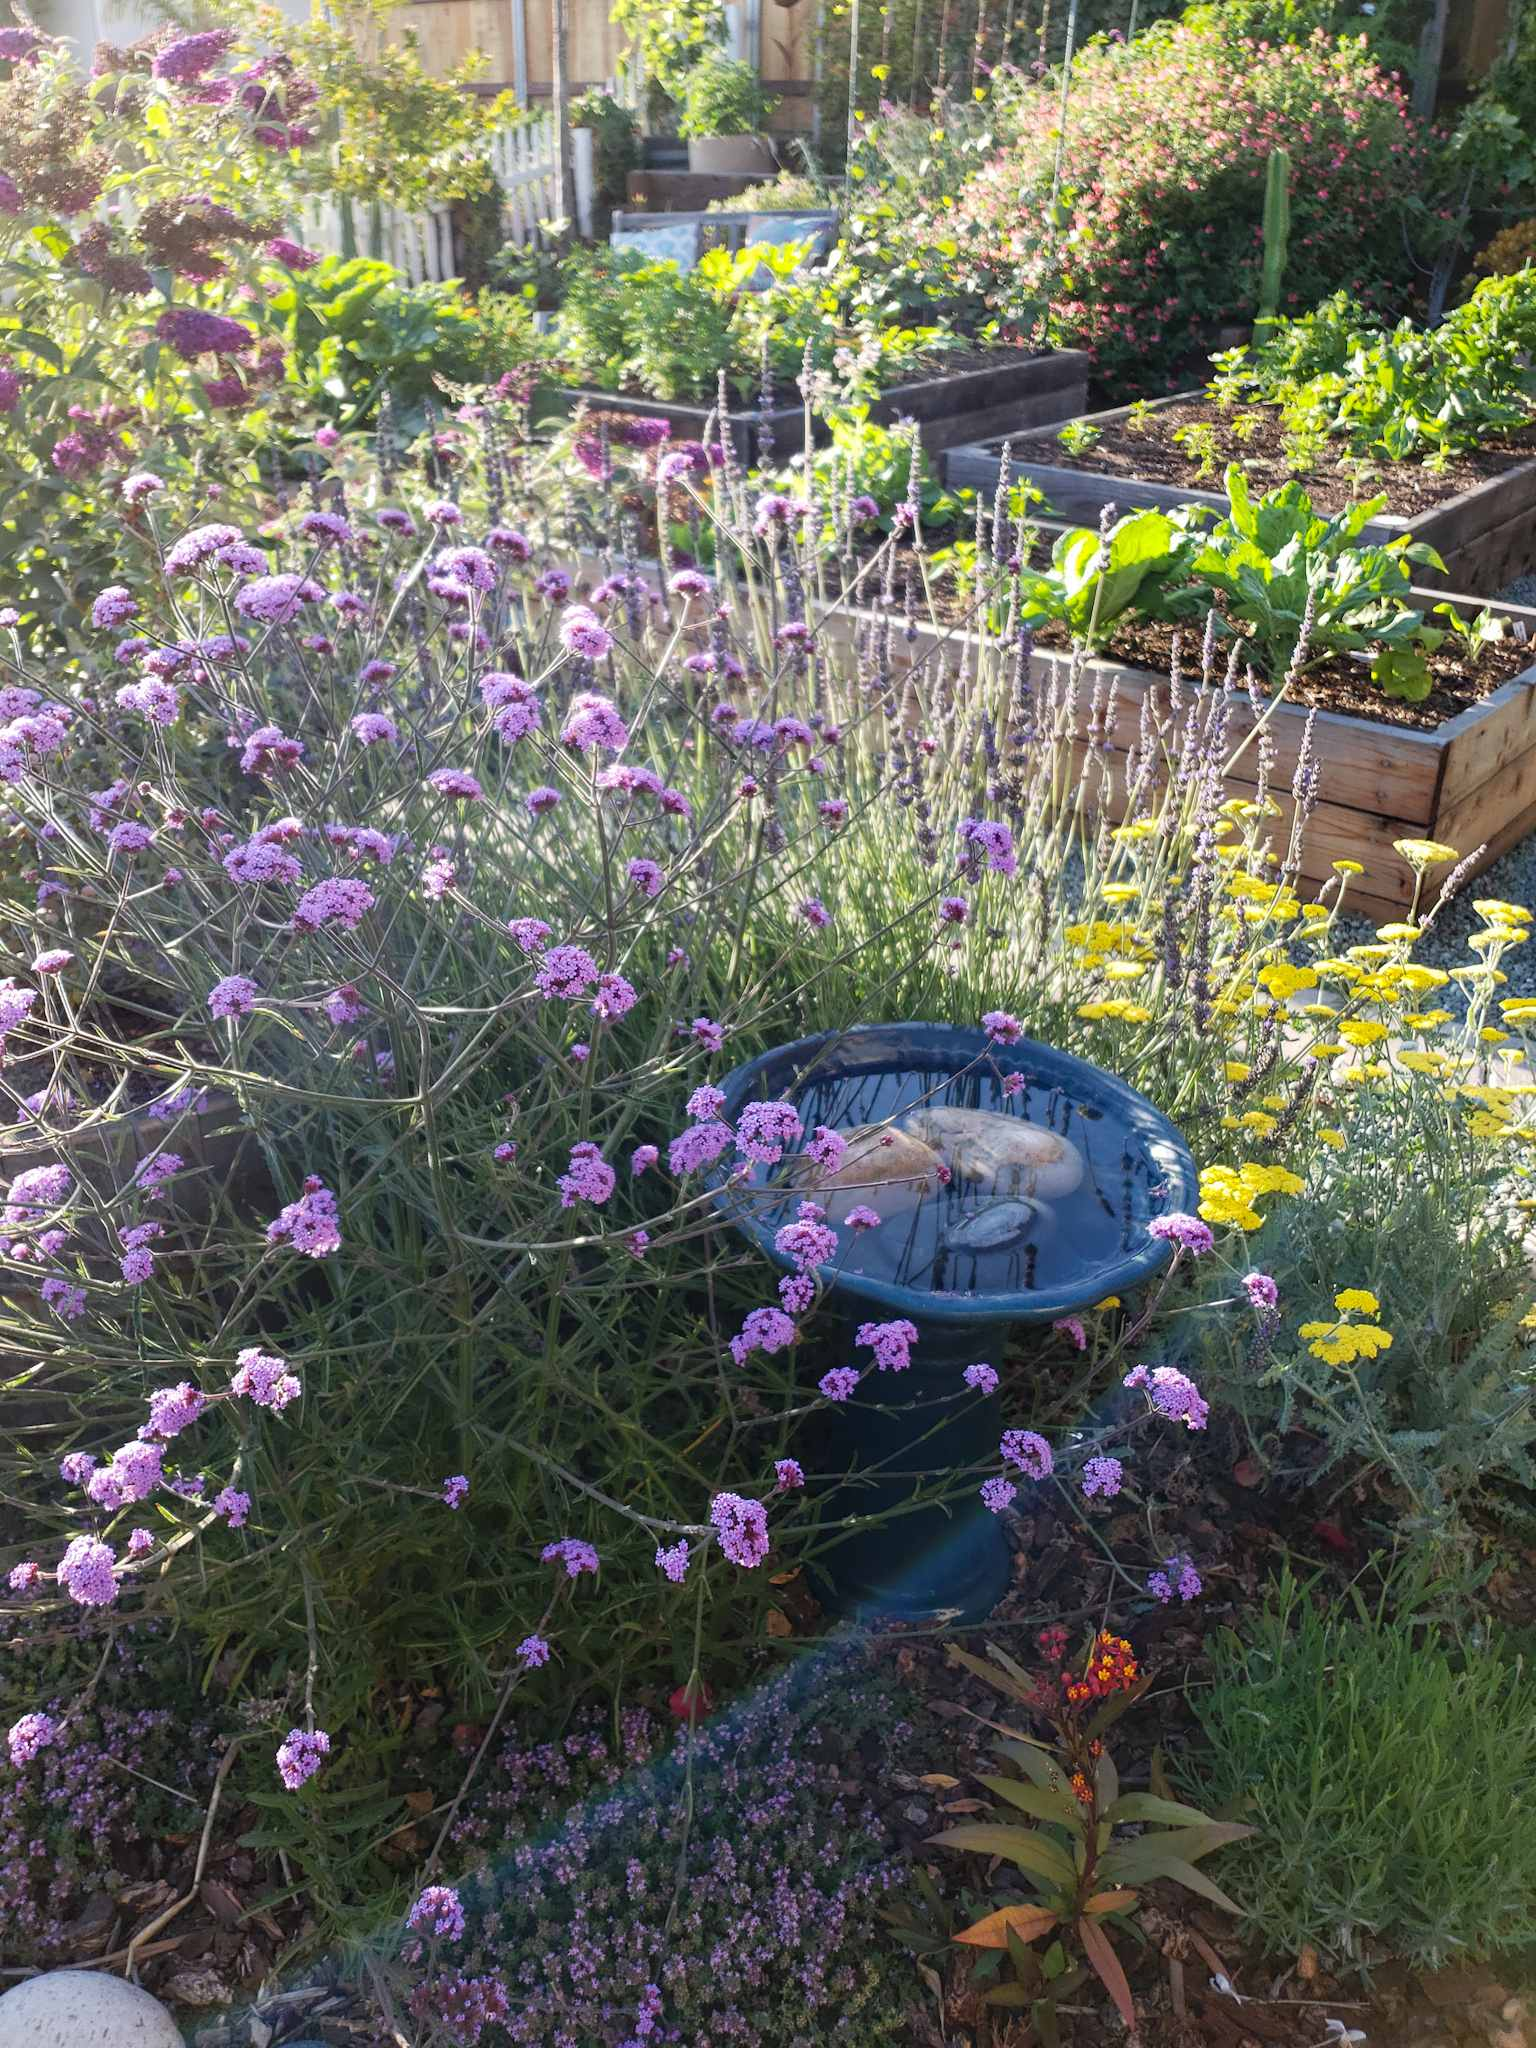 A bird bath is shown full to the brim with three larger rocks sitting in the middle of it. It is nestled amongst large verbena, lavender, and yarrow, with thyme and milkweed at the foot of the bath. Beyond the bird bath there are various wood raised garden beds full of vegetables with some larger perennials and cacti further in the background.